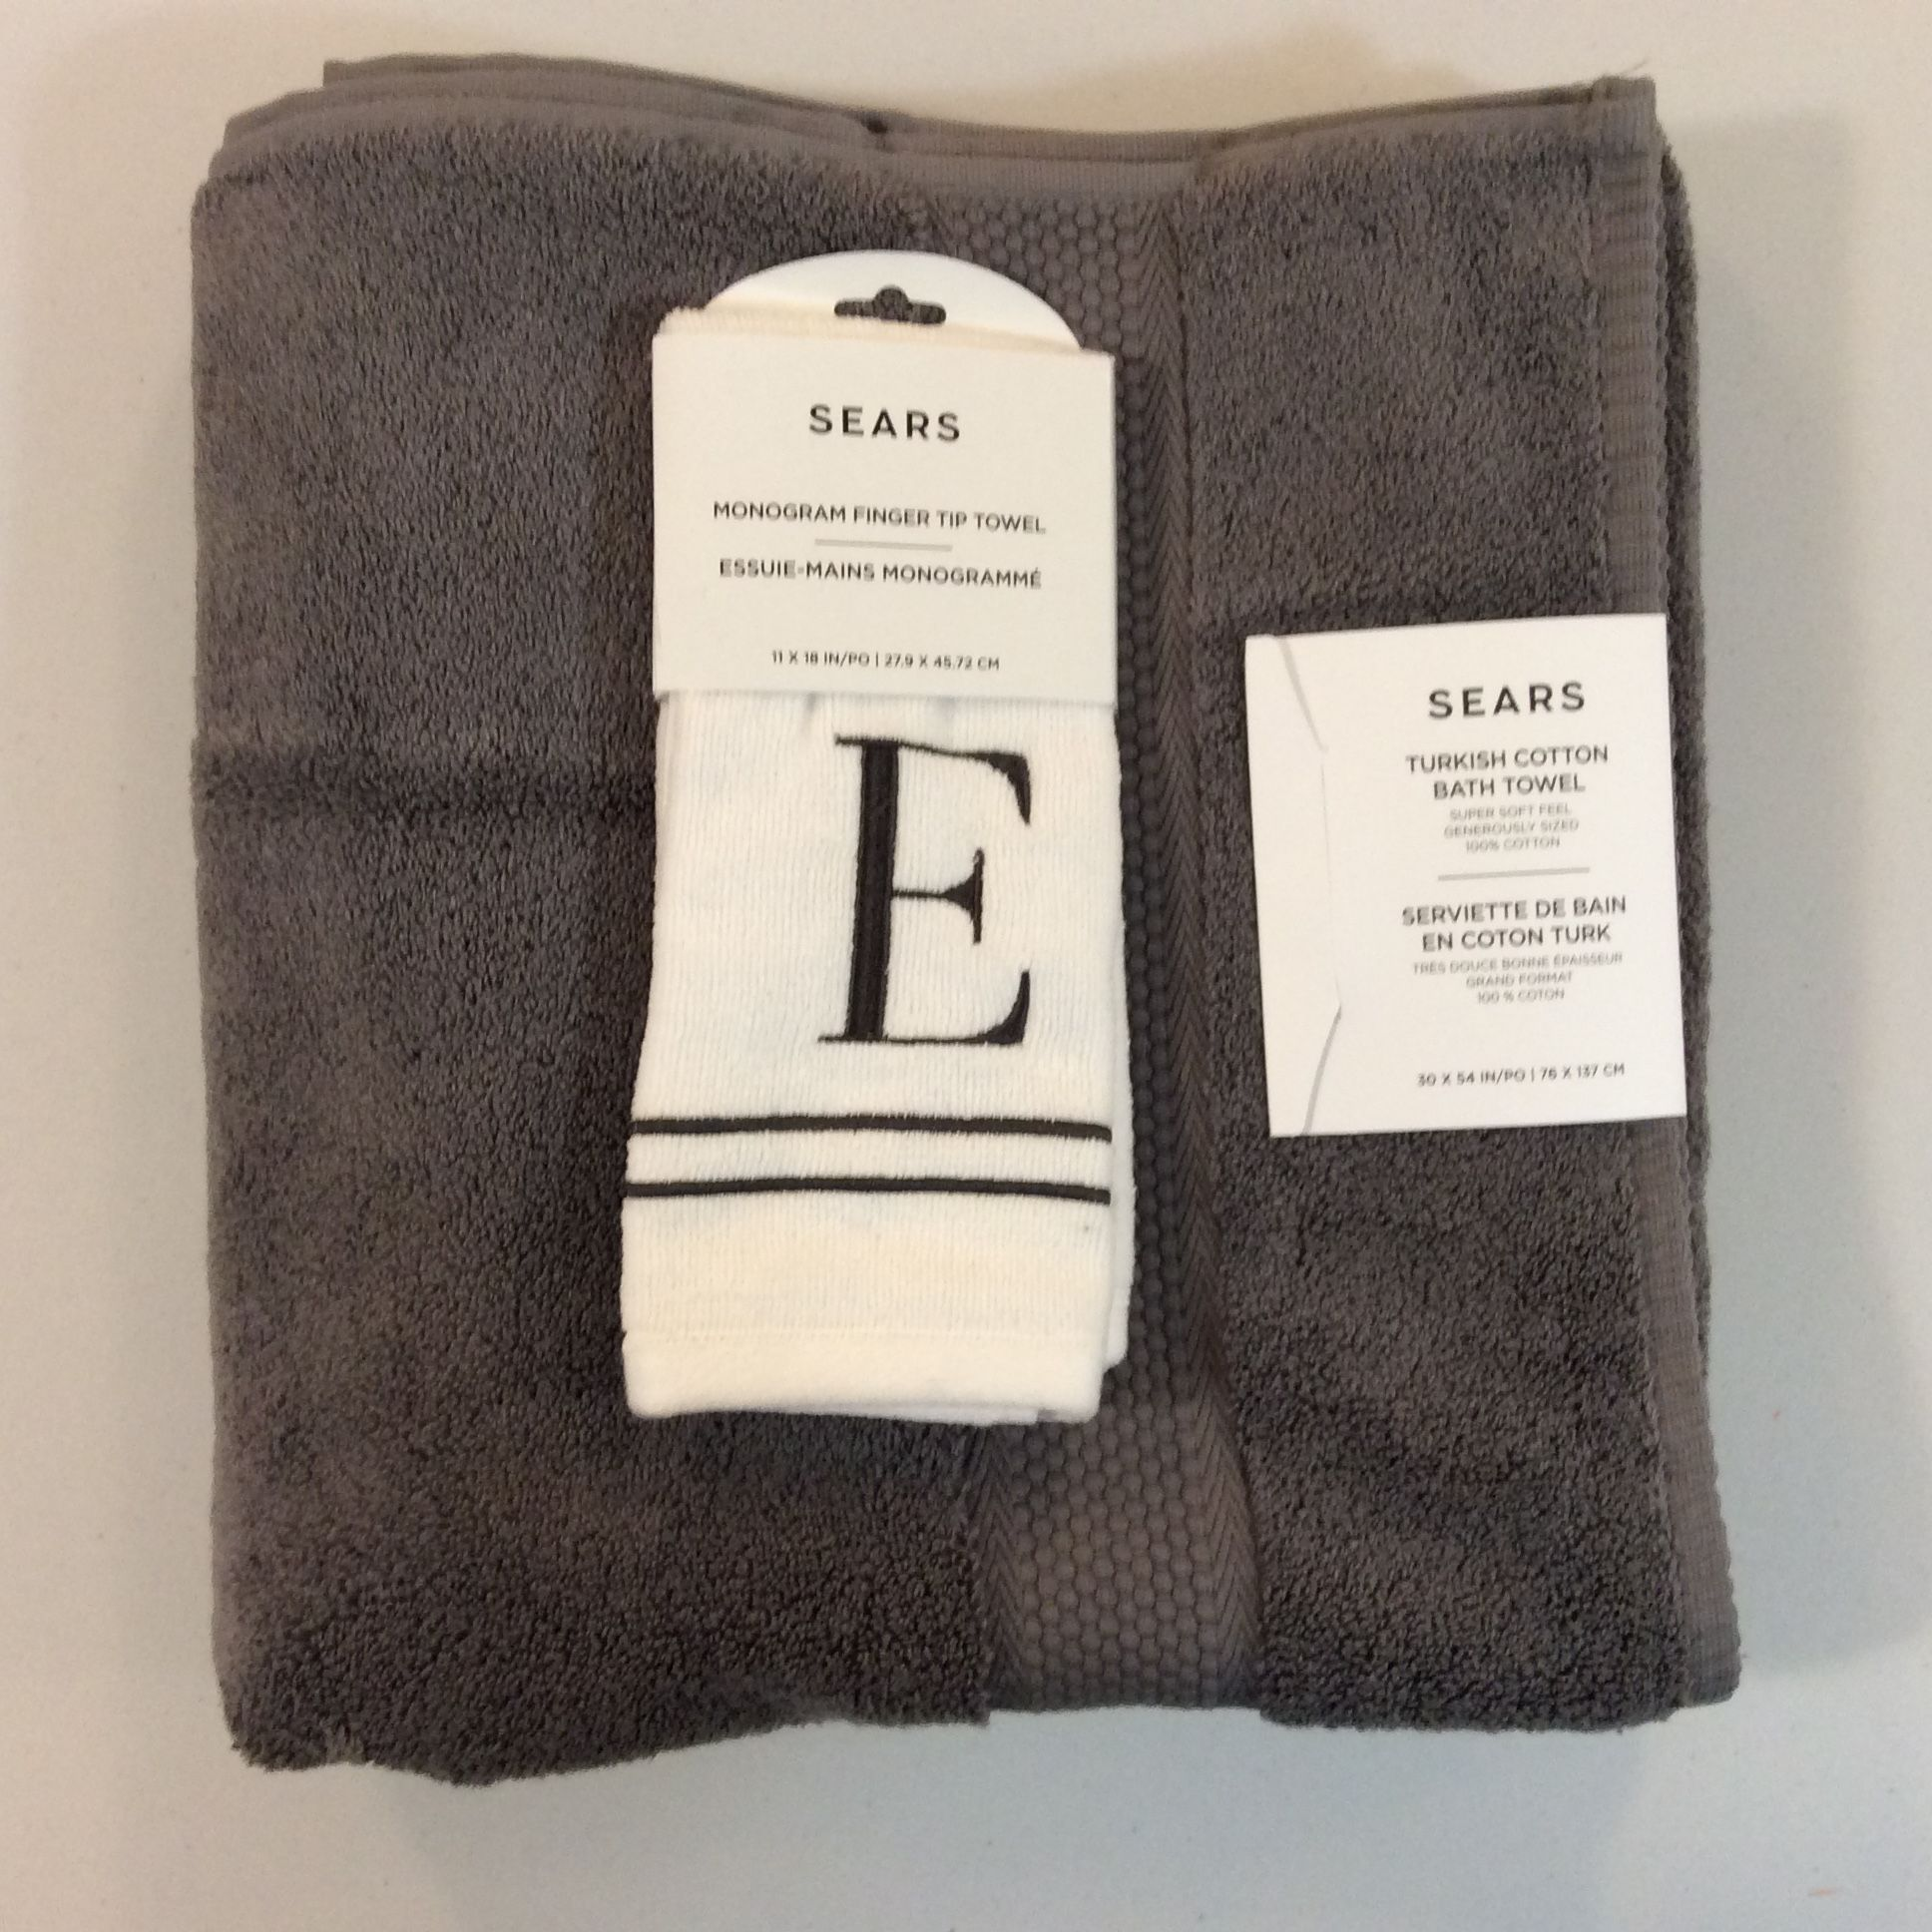 Towels - Sears | Apartment Deets! | Pinterest | Towels and Apartments